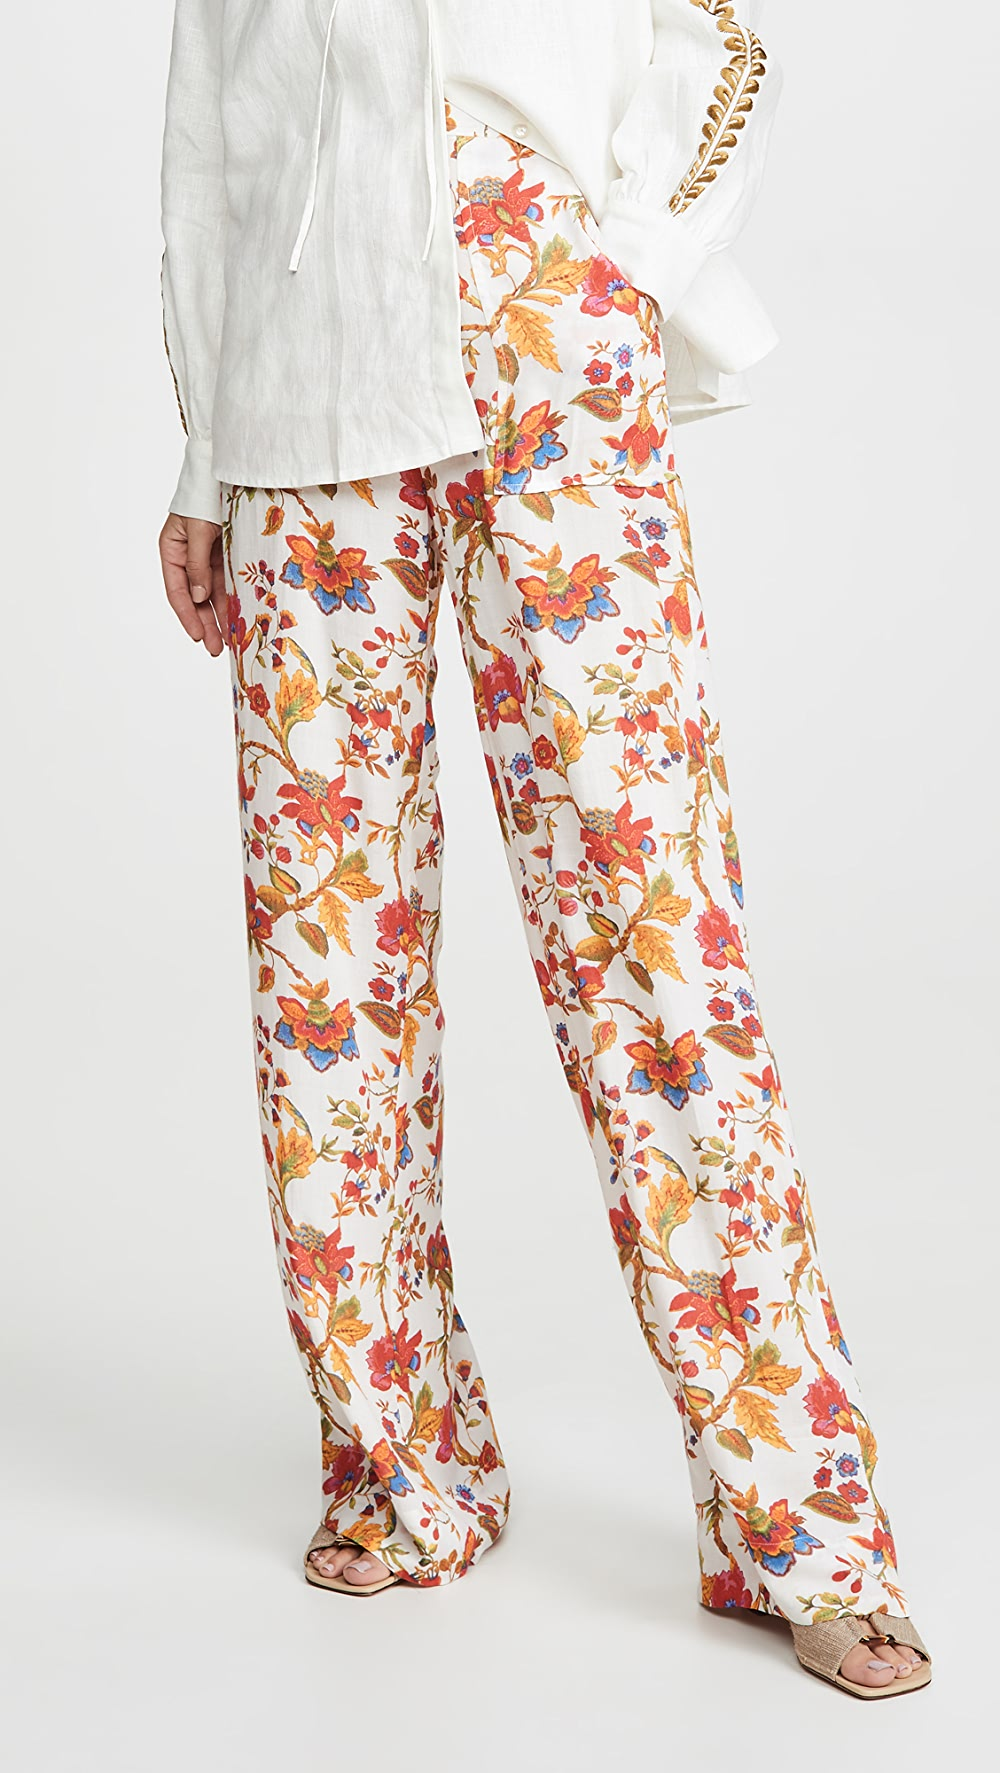 Glorious Alix Of Bohemia - Silk Floral Charlie Pants Luxuriant In Design